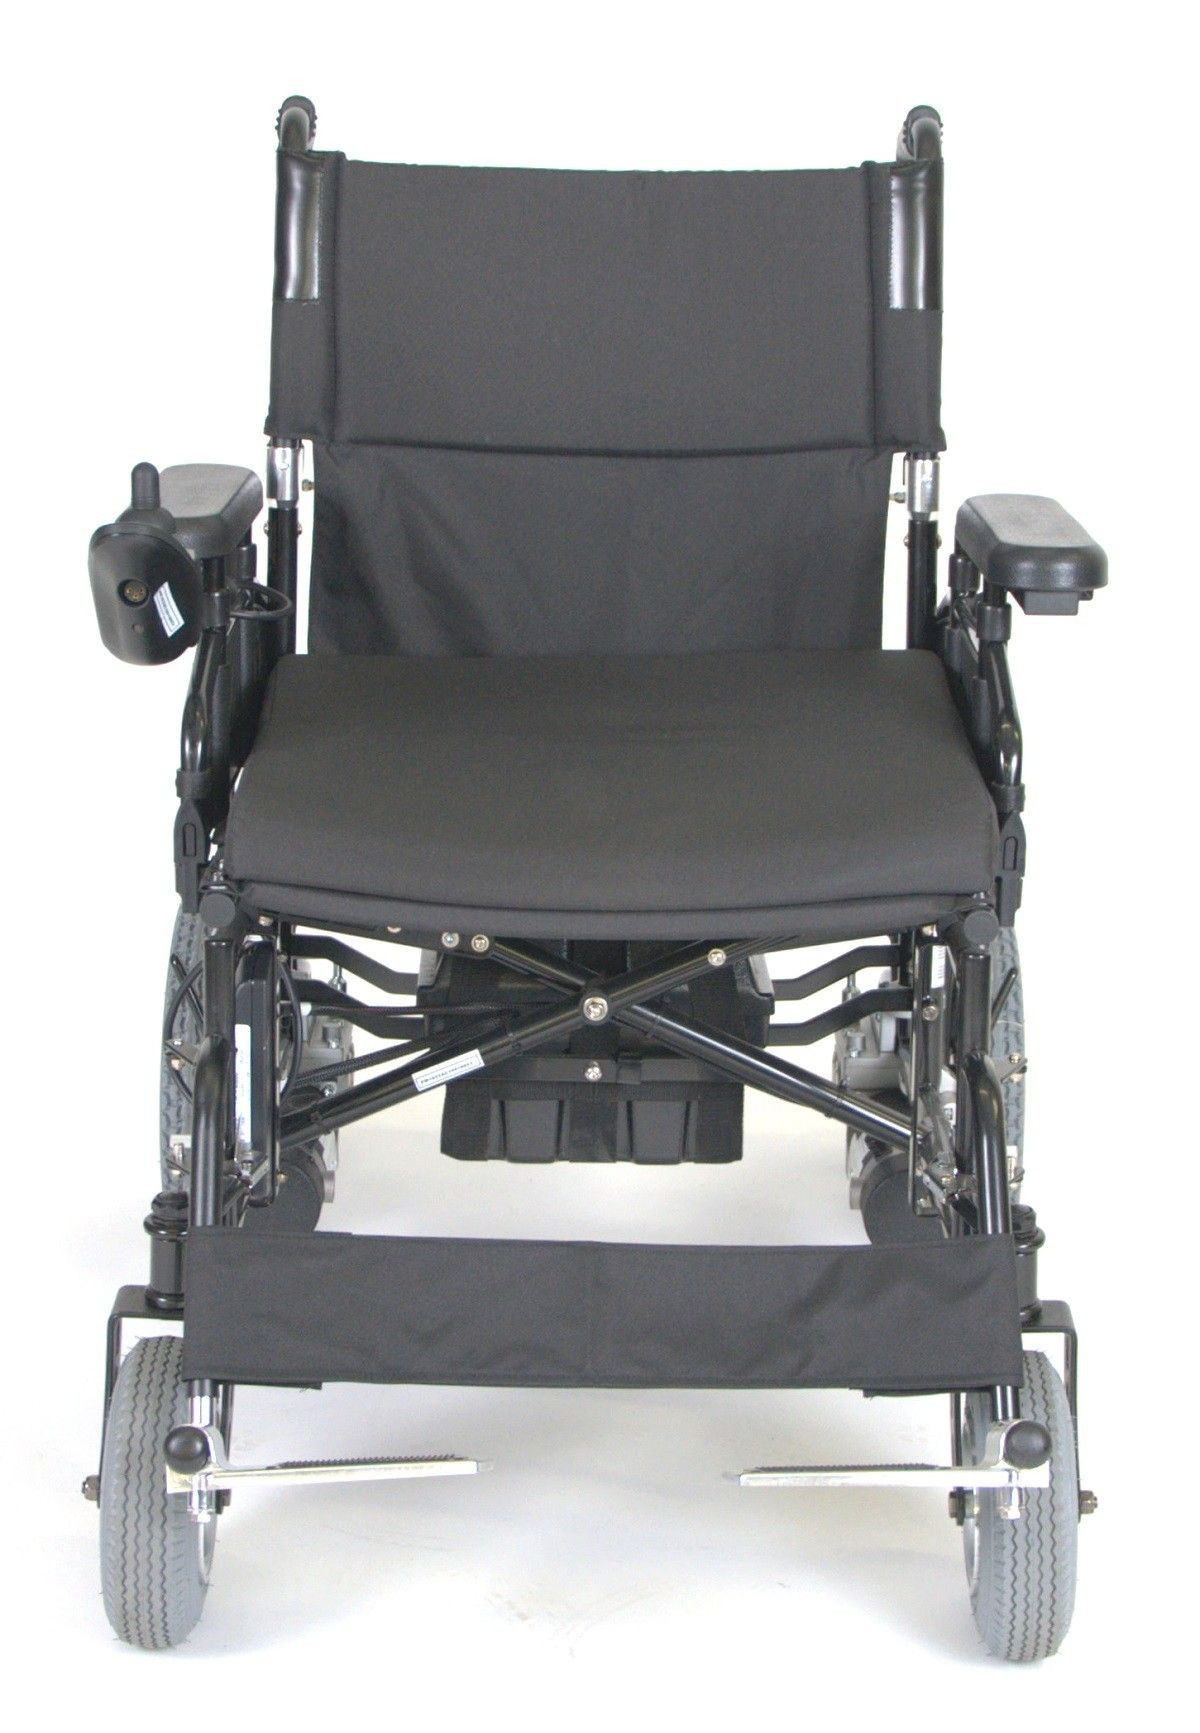 power chairs for sale target outdoor black wildcat 450 wheelchair at the lowest price